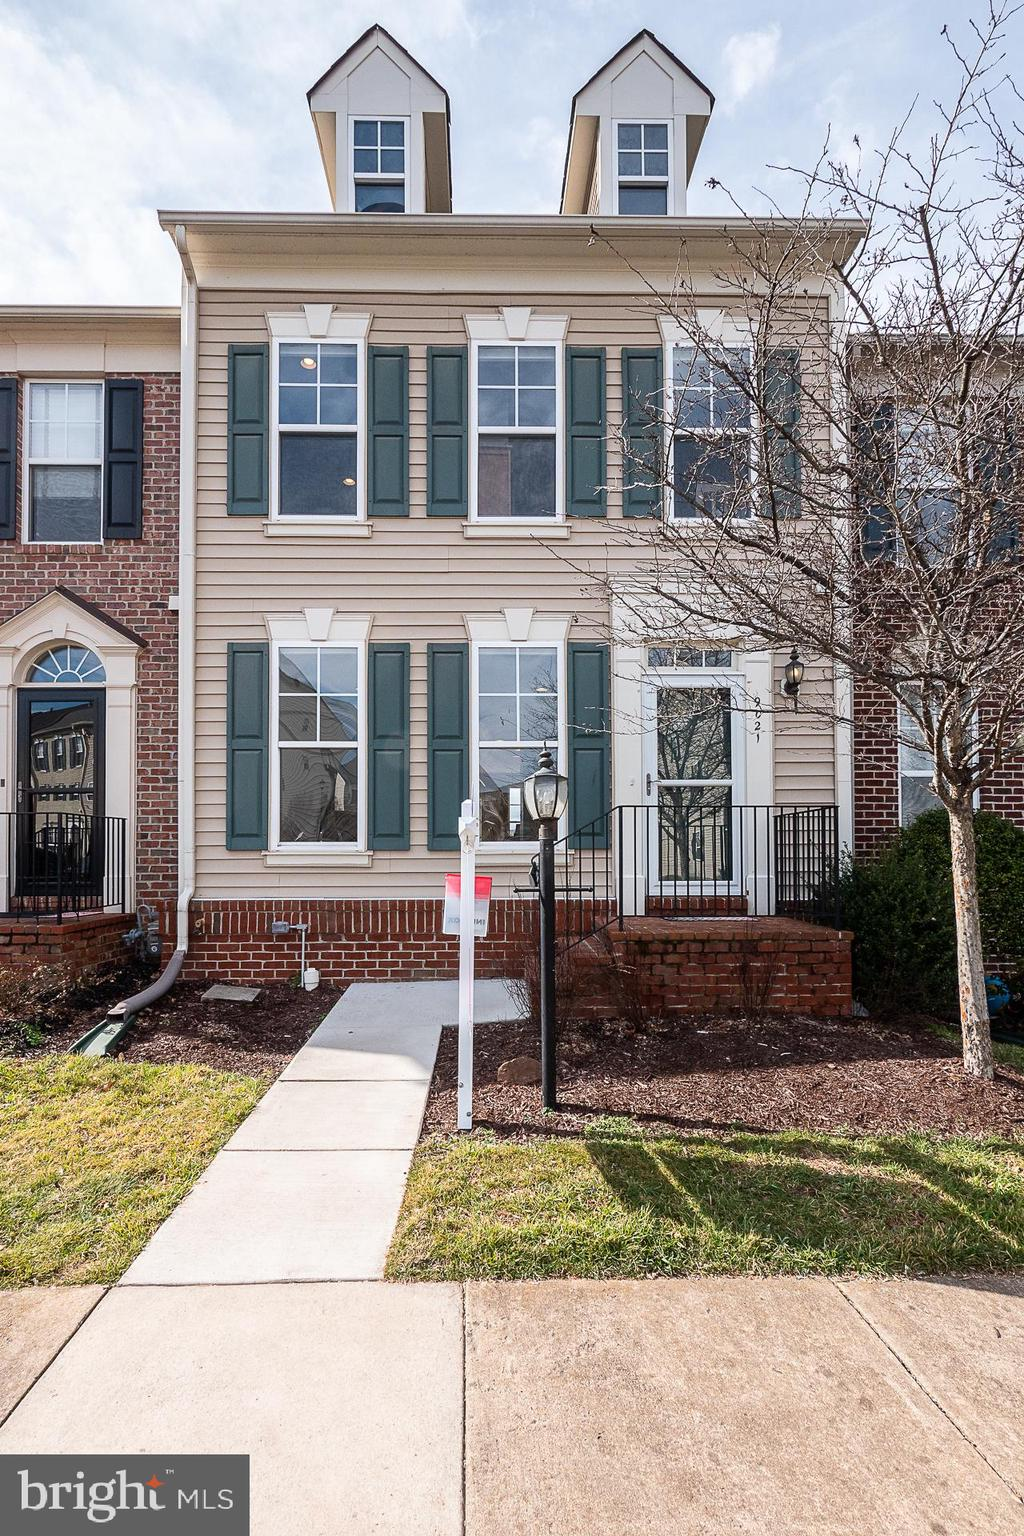 Spacious Victory Lakes Townhome w/ Incredible lot Backing to Lake* New Carpet & Paint*3 Bedroom 3.5